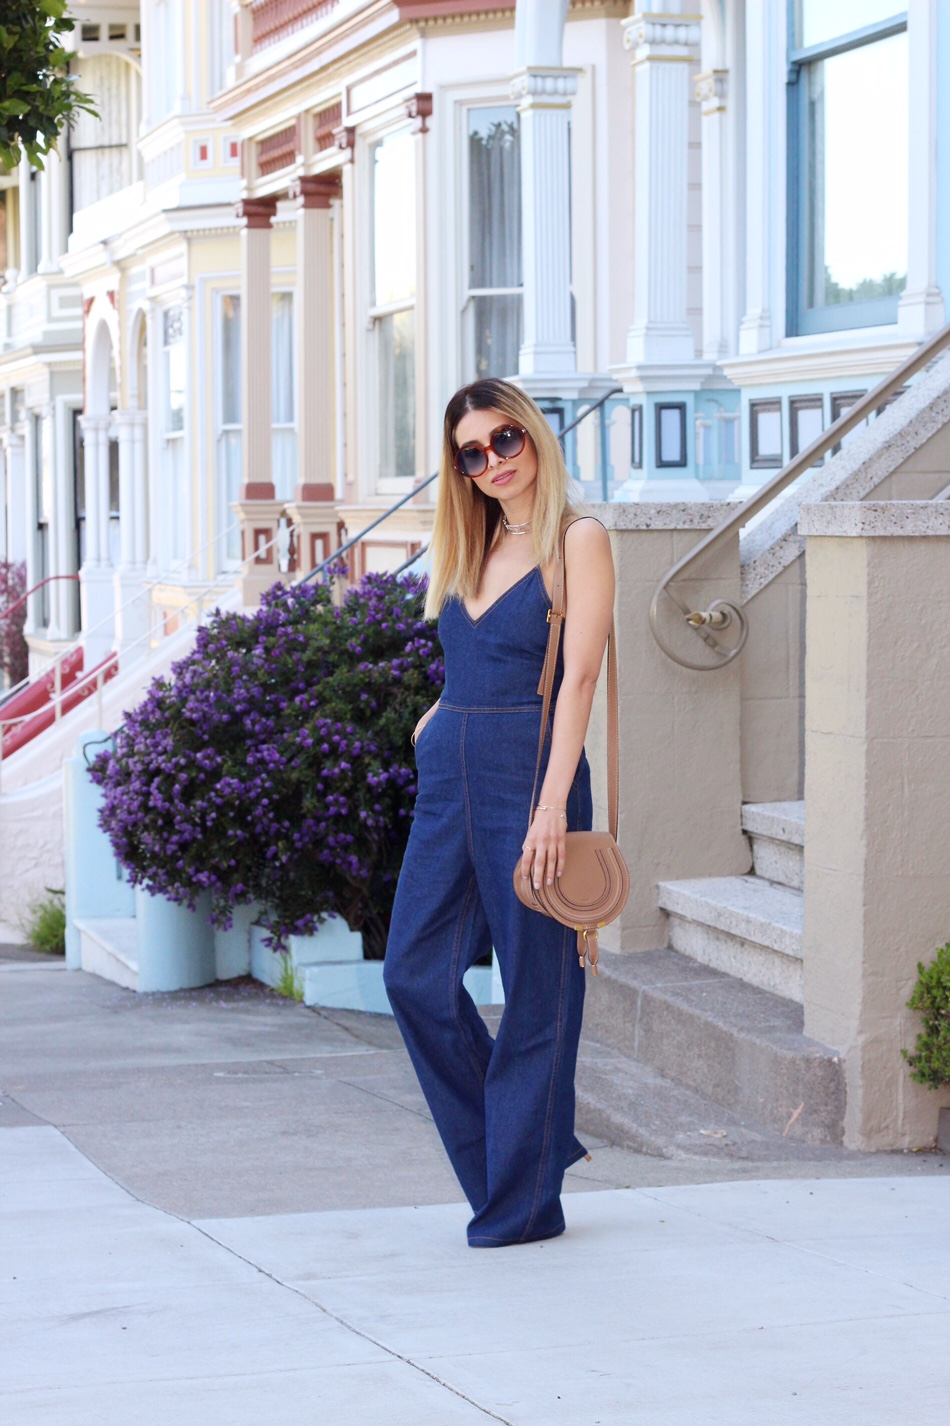 painted ladies_sf_things to see in SF_sightseeing in SF_san francisco travel guide_sf blogger_sf travel_travel to sf_tobi_denim jumpsuit_denim_denim on denim_chloe_chloe girls_chloe marcie bag_savvy javvy